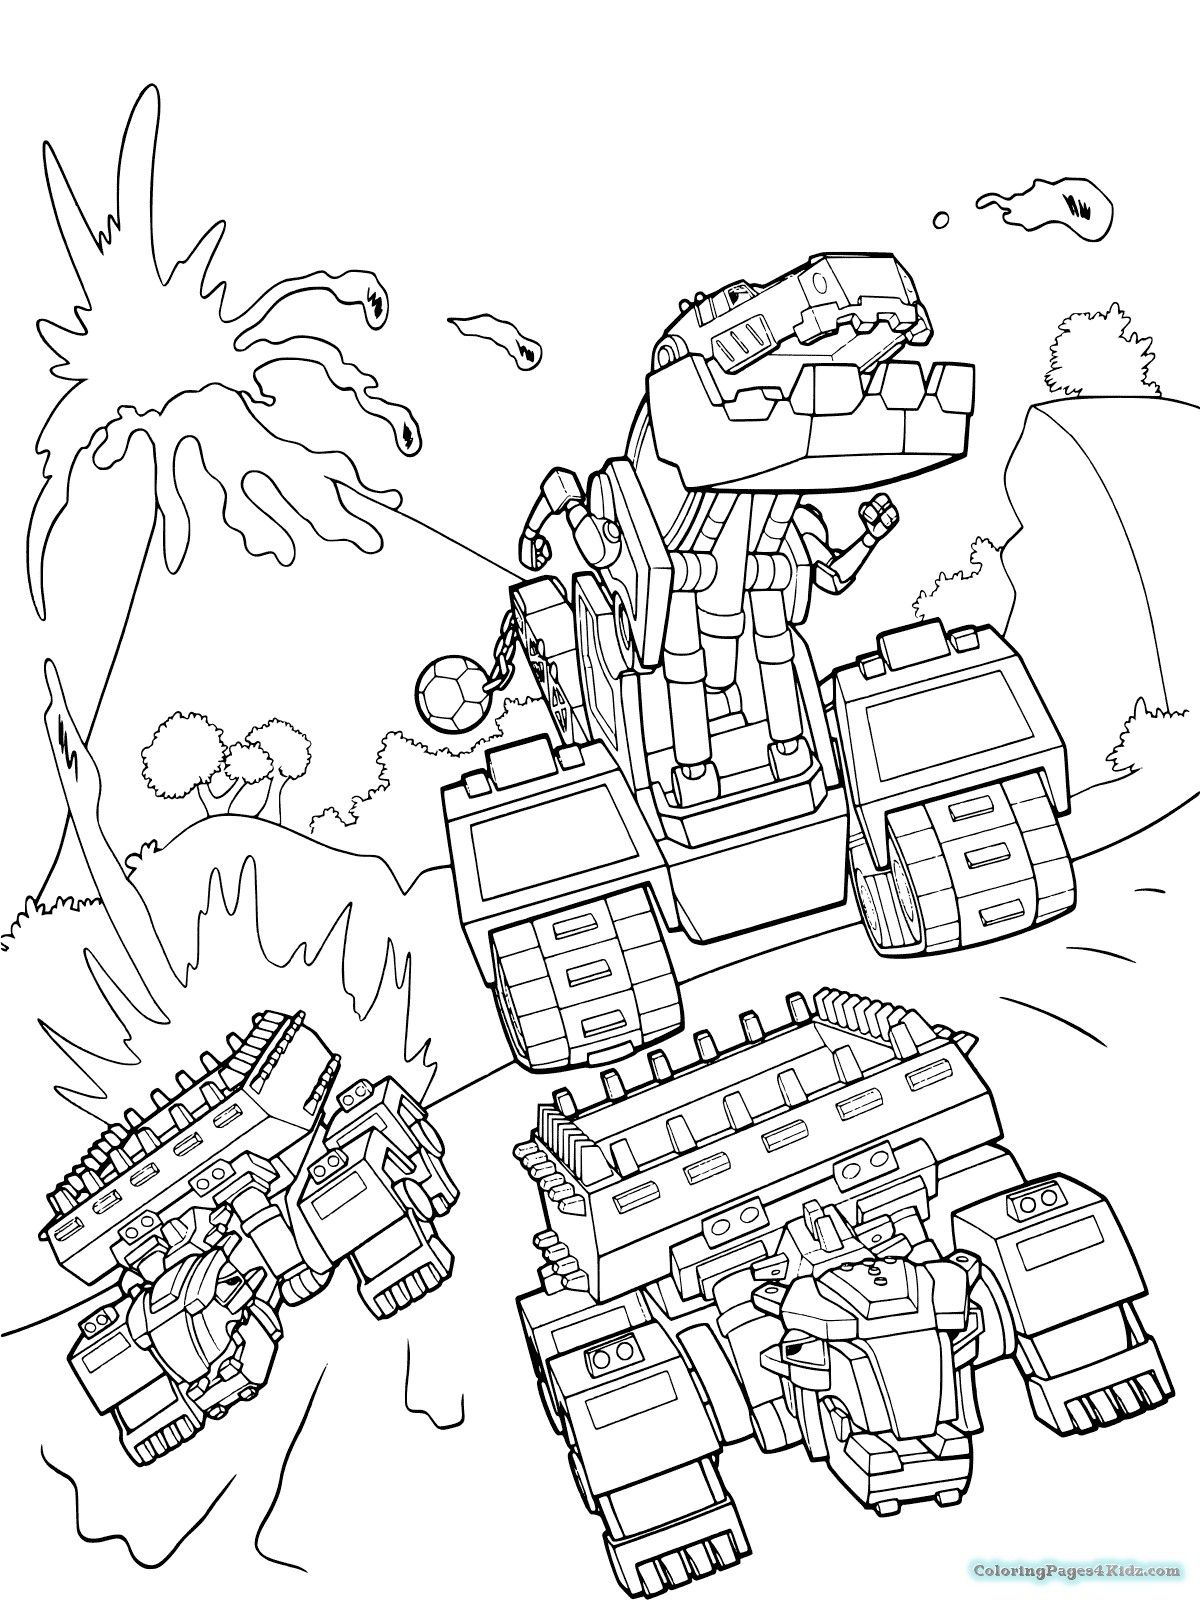 Dinosaurs Coloring Pages Dinosaur Coloring Pages Star Wars Coloring Book Coloring Pages